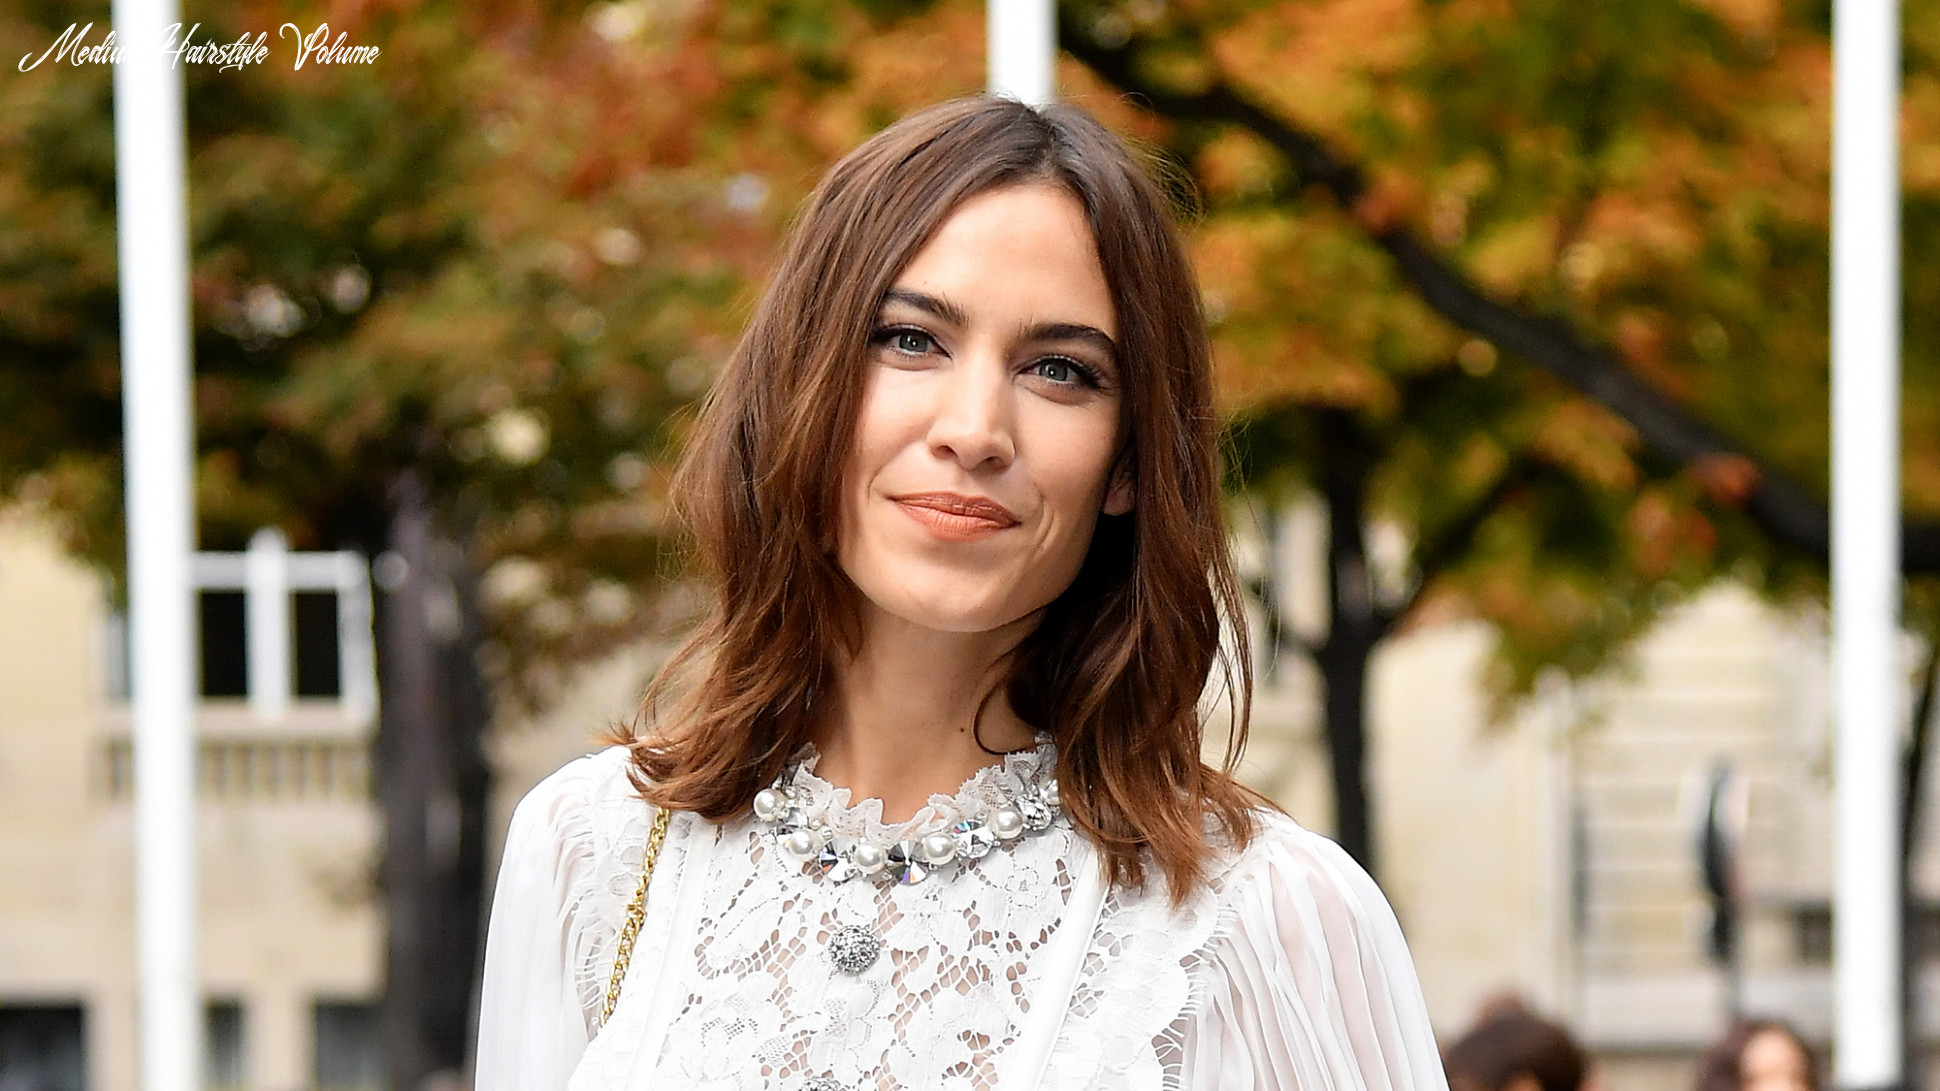 12 medium length hairstyles to take straight to the salon   Marie Claire